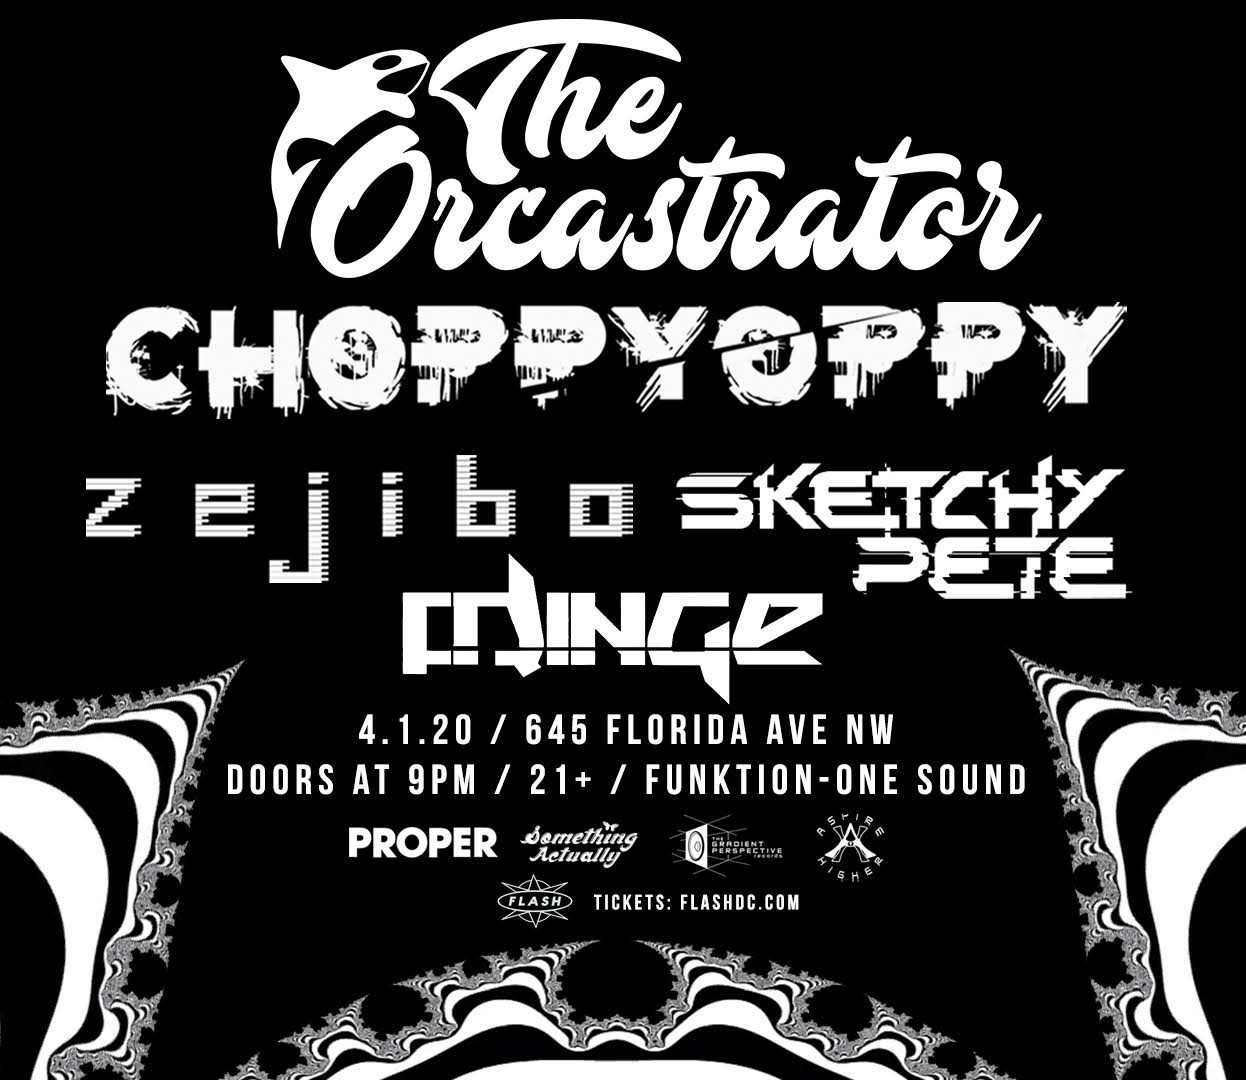 The Forced Reset Tour: The Orcastrator - Choppy Oppy - Zejibo event thumbnail